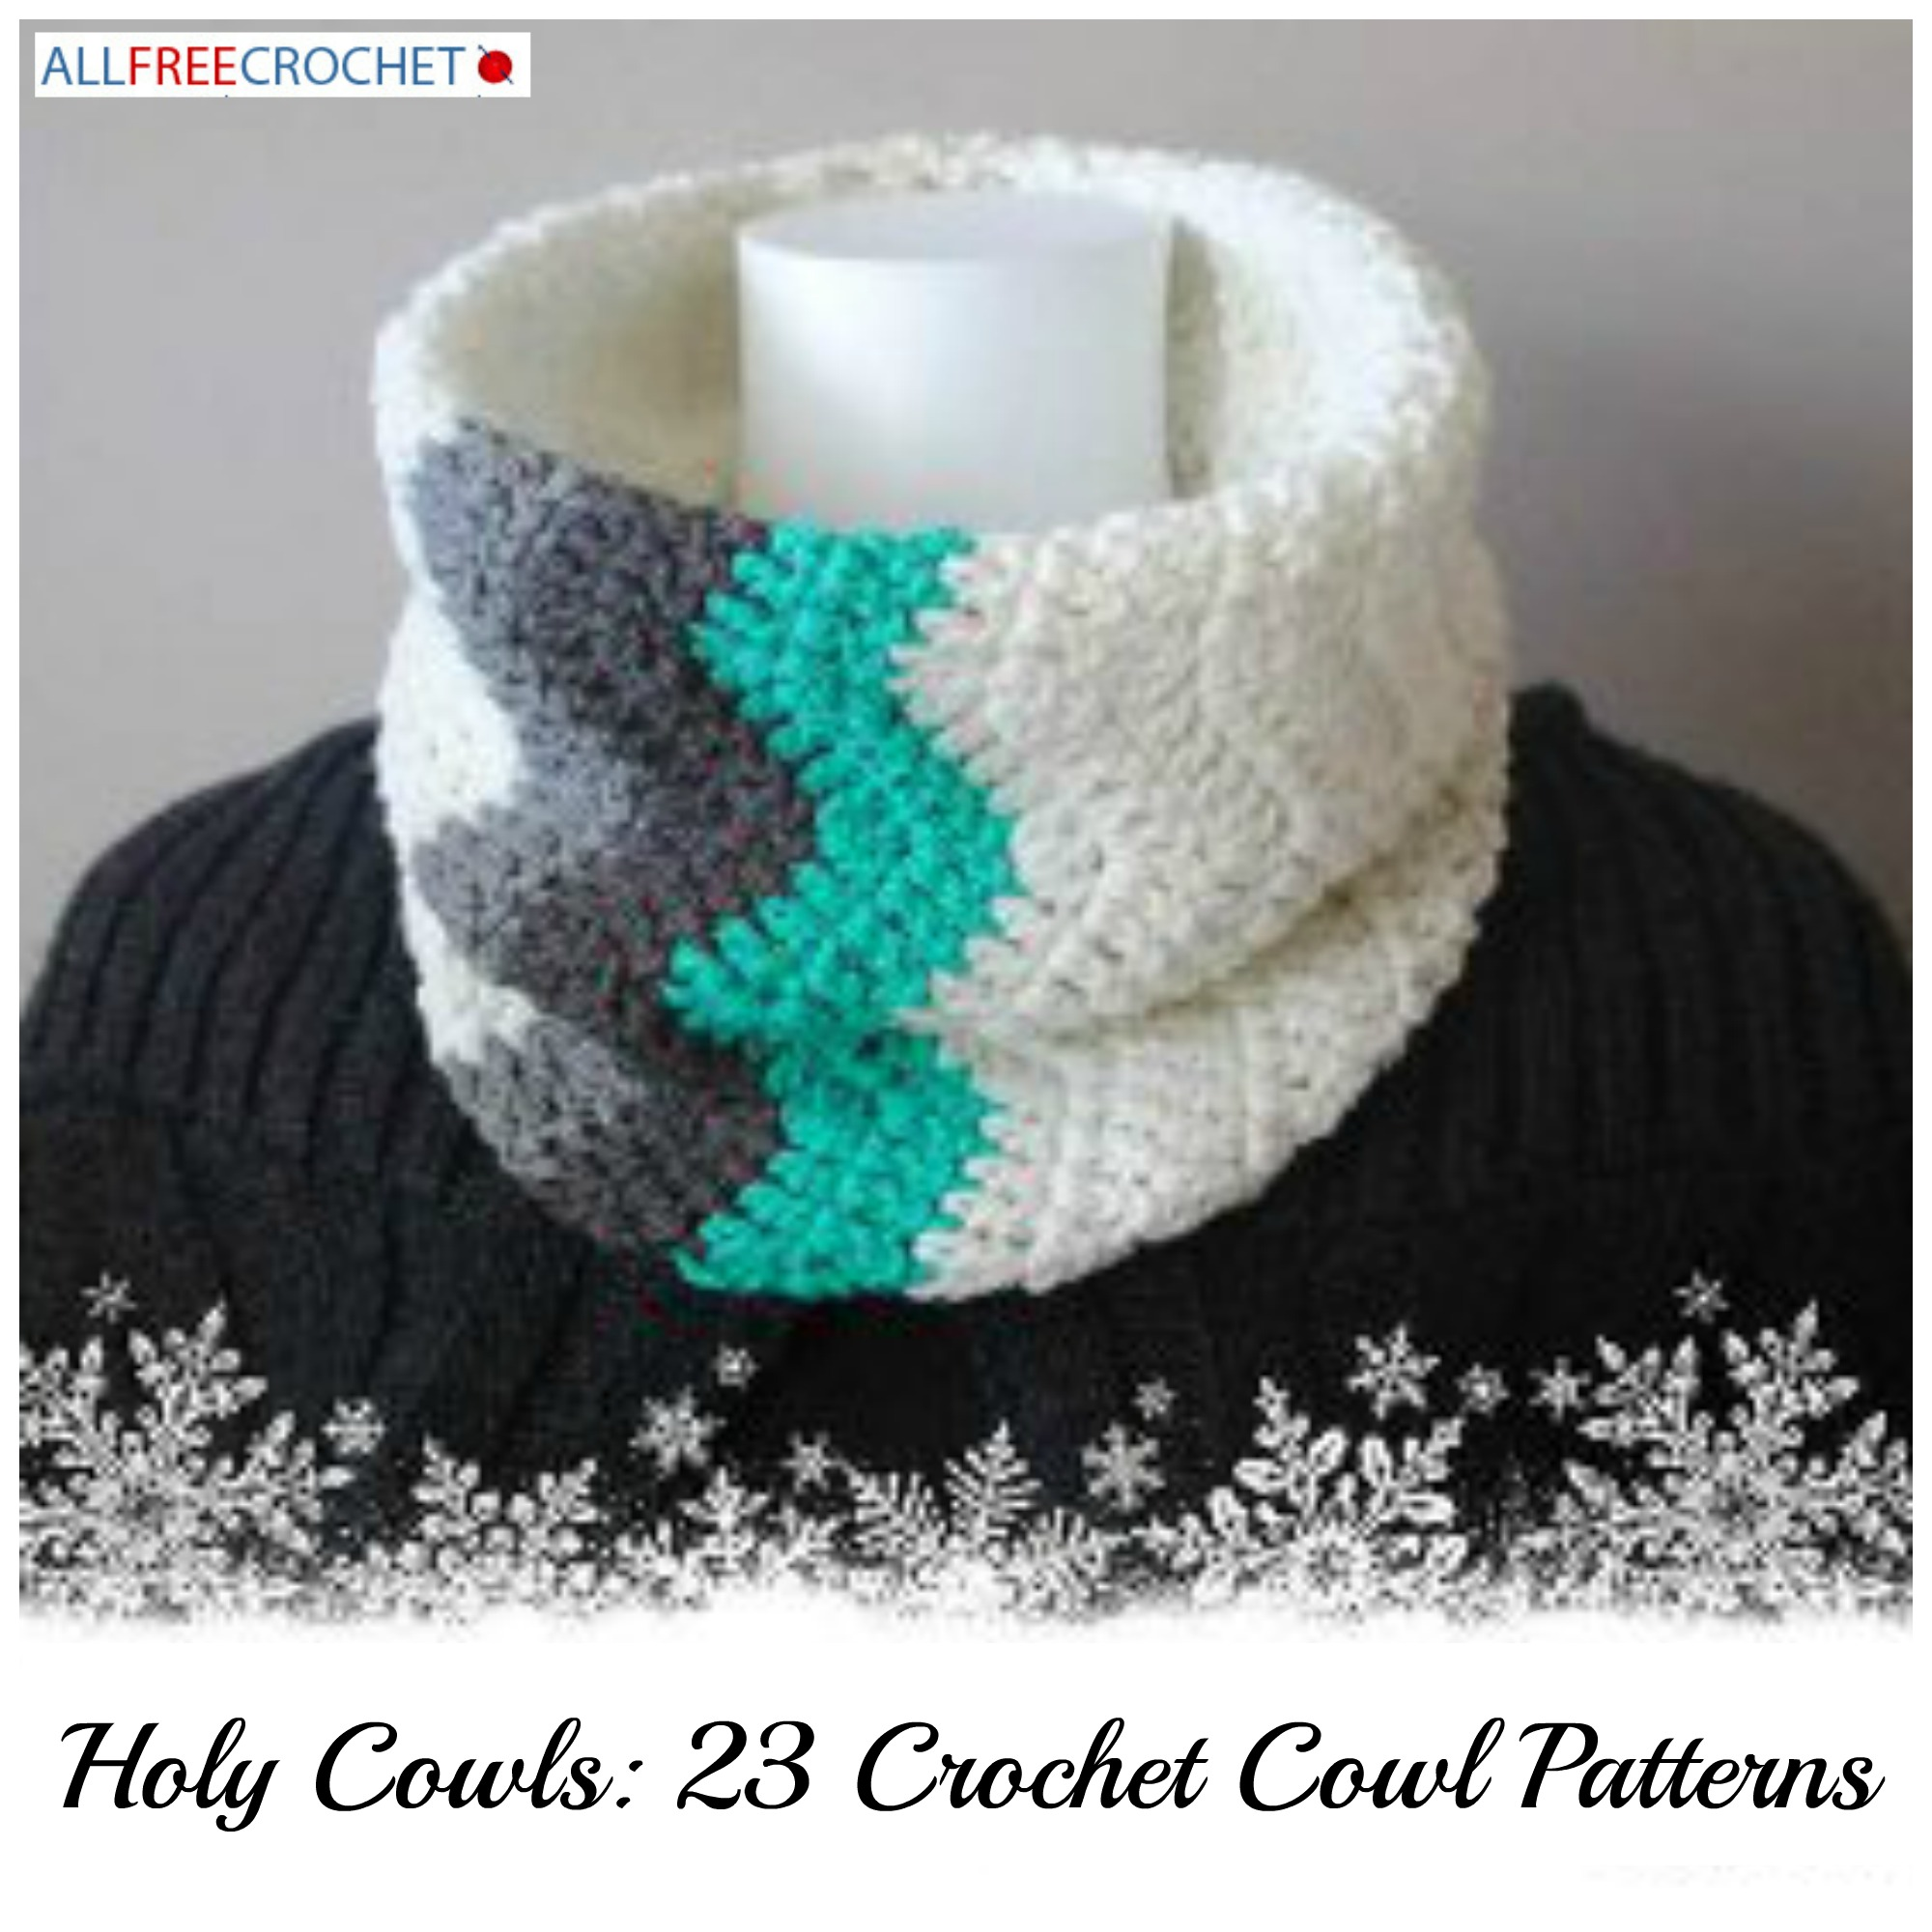 Holy Cowls! 23 Crochet Cowl Patterns - Stitch and Unwind